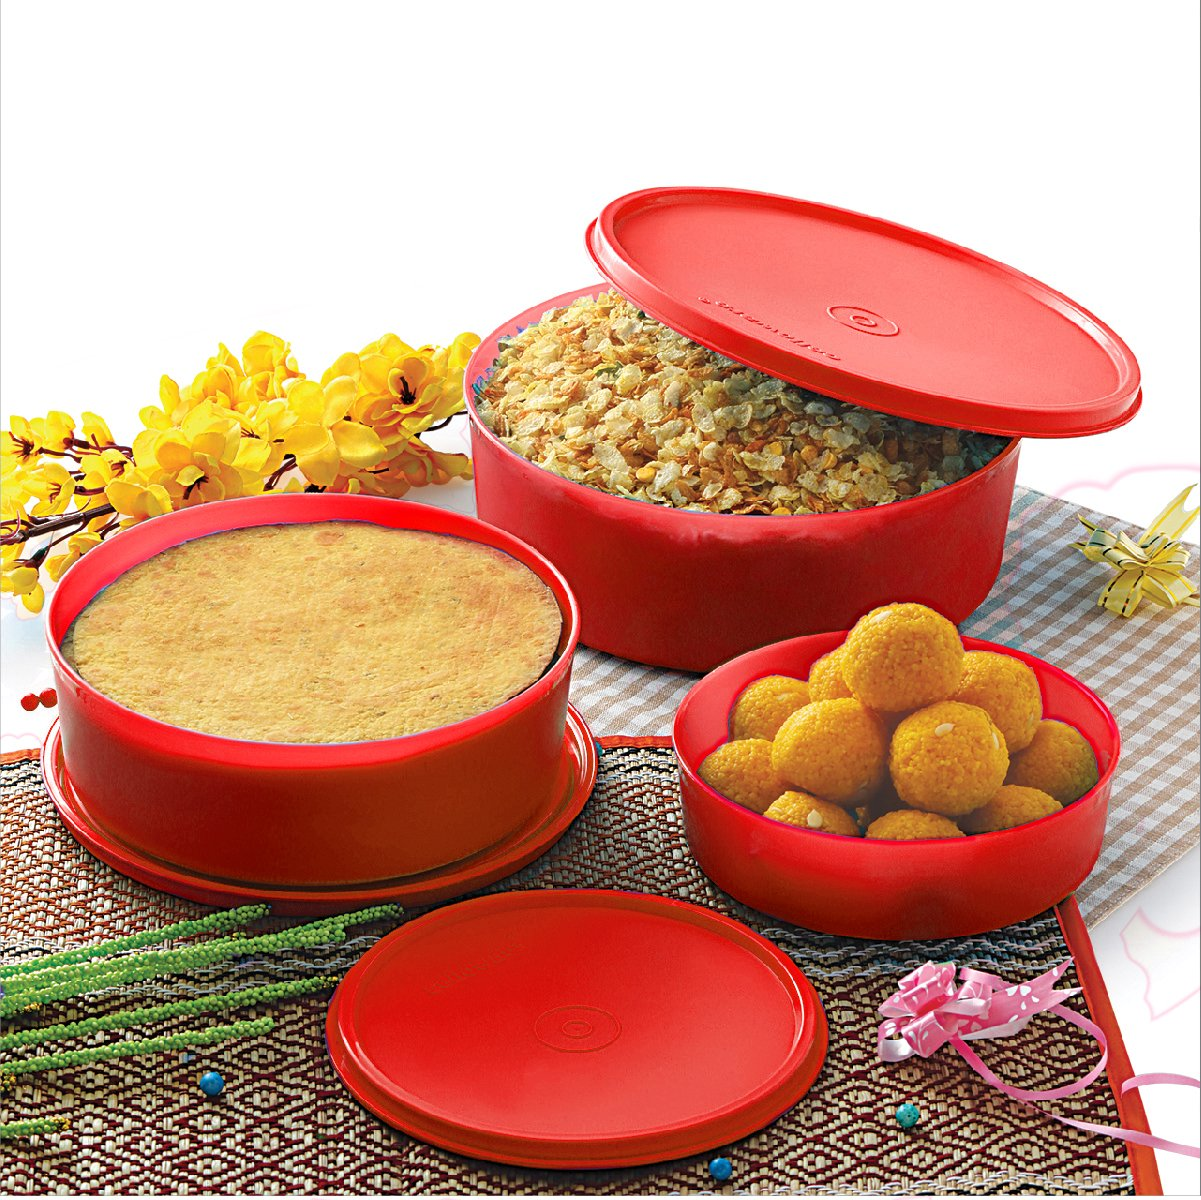 Cello Max Fresh Universal Polypropylene Container Set, 3-Pieces, Red